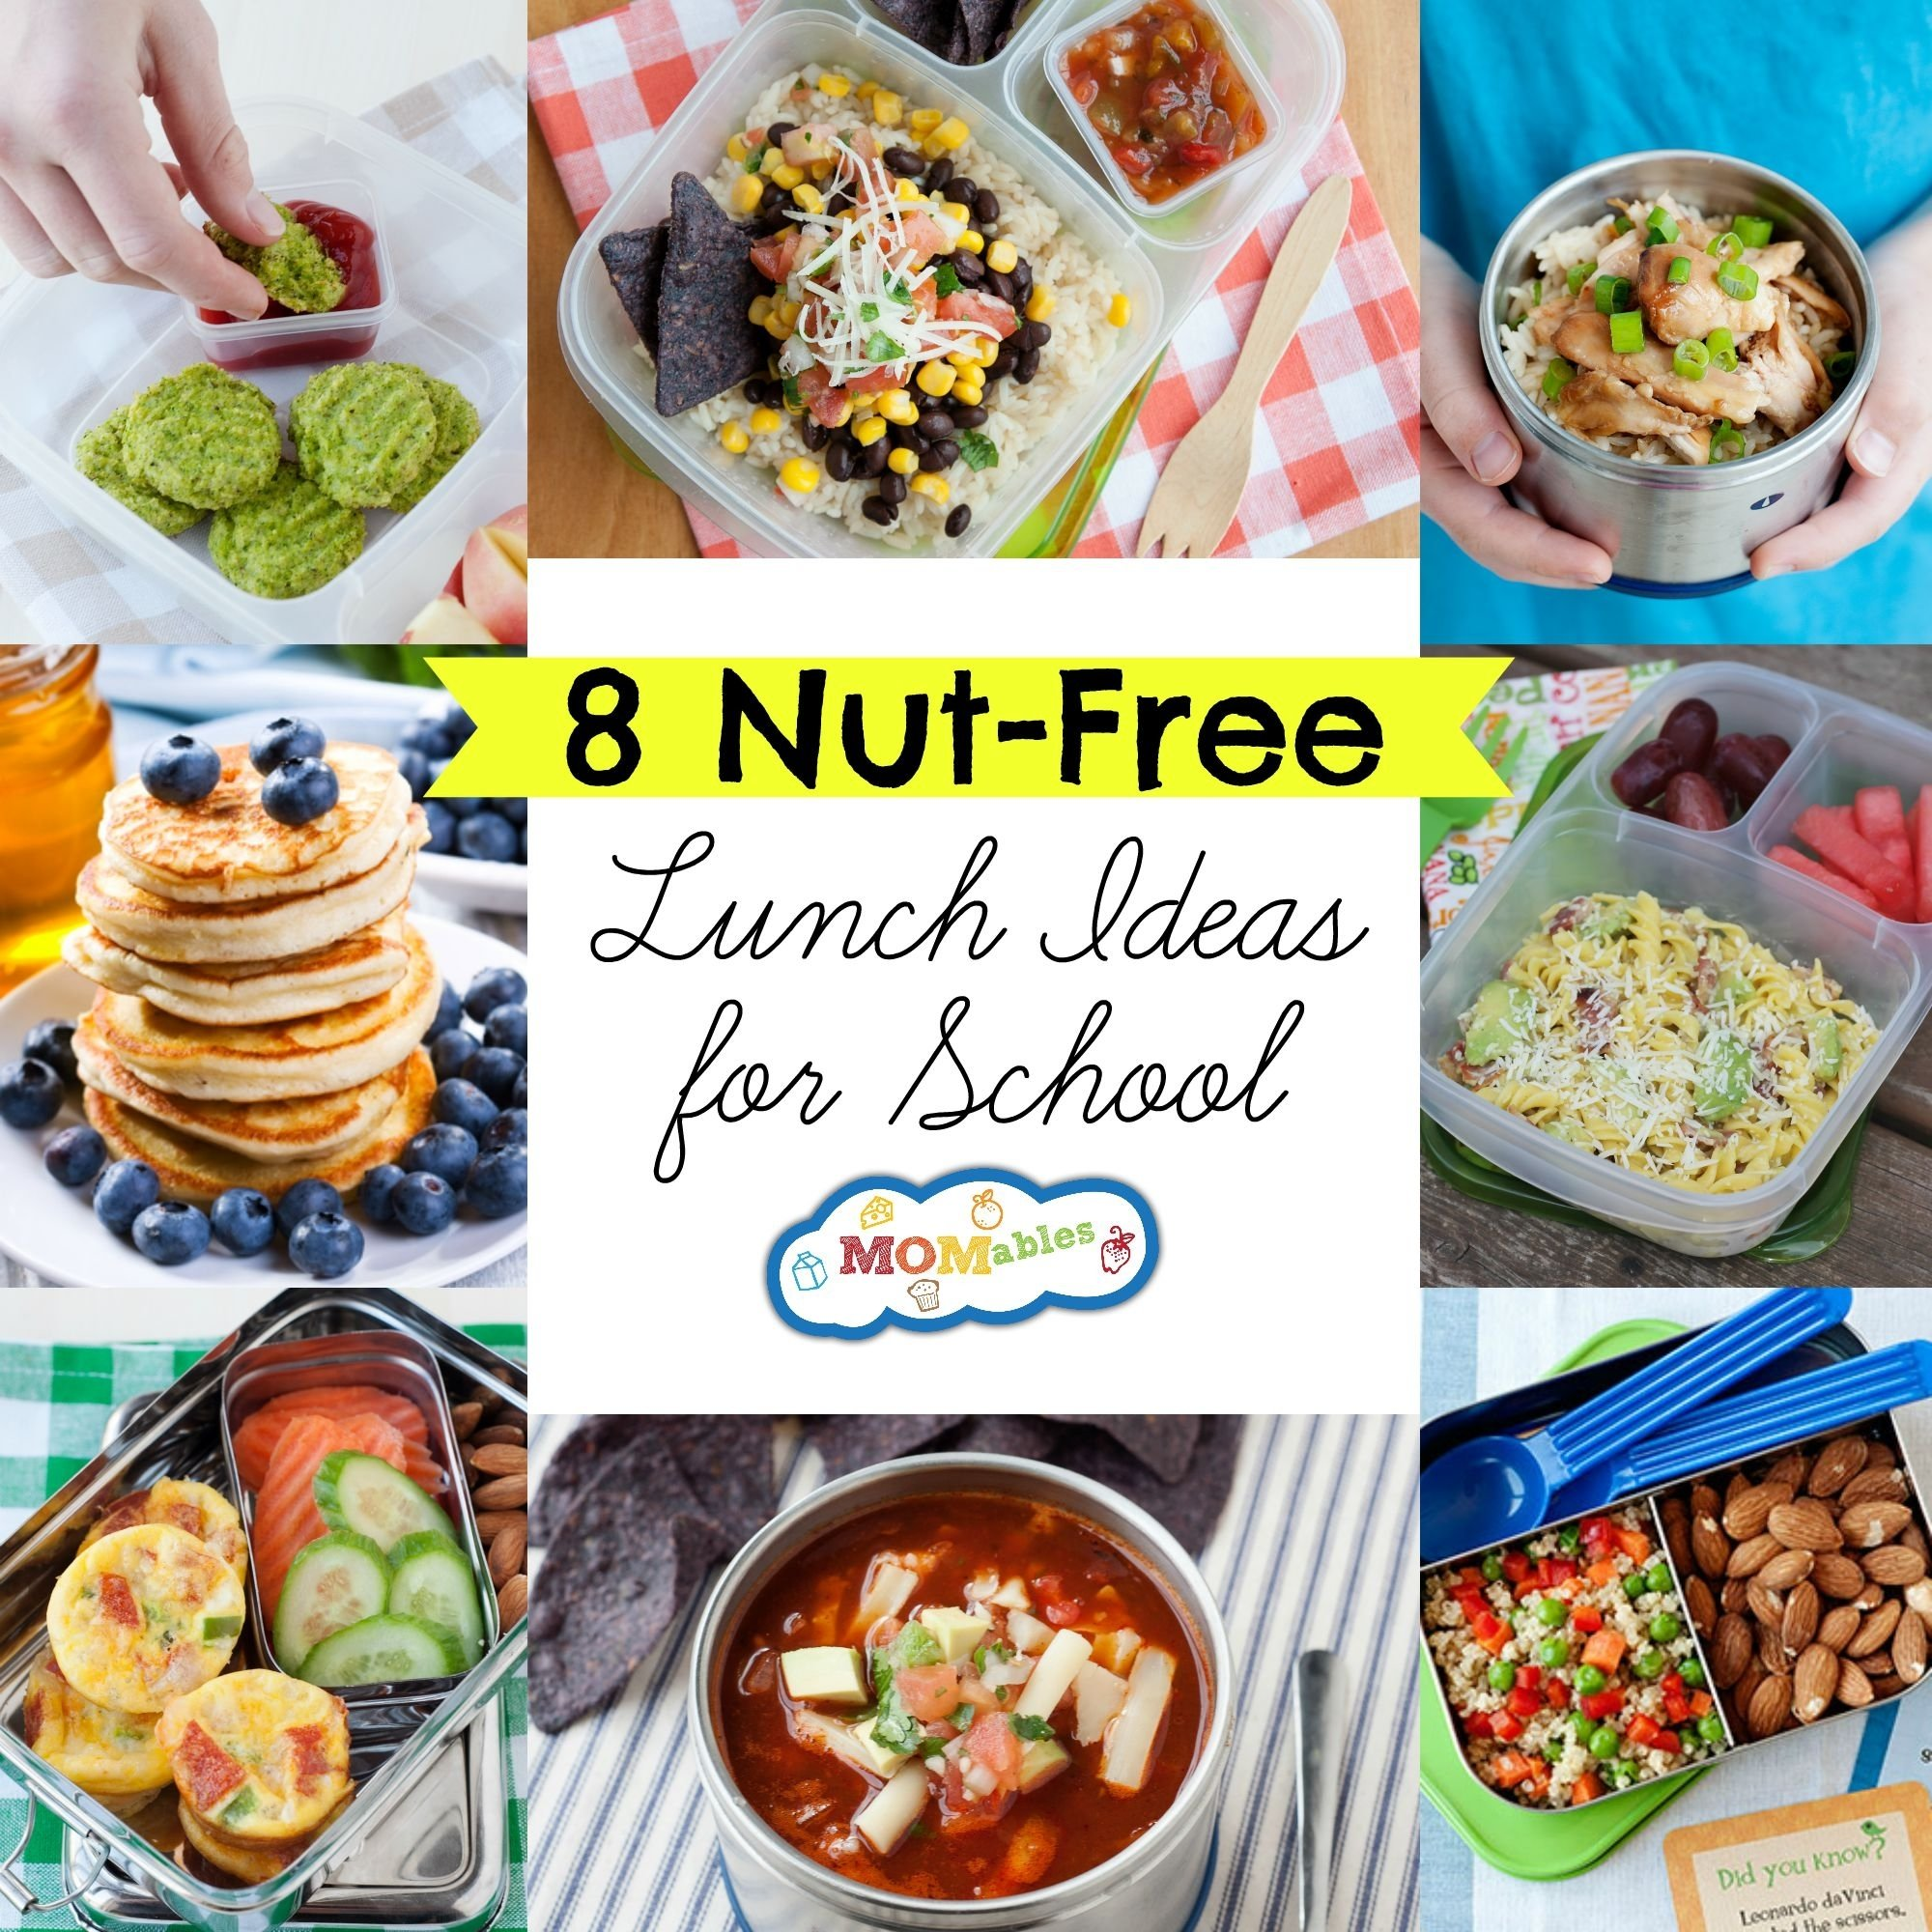 10 Stylish Gluten Free School Lunch Ideas 7 gluten free lunch ideas for school momables 14 2020